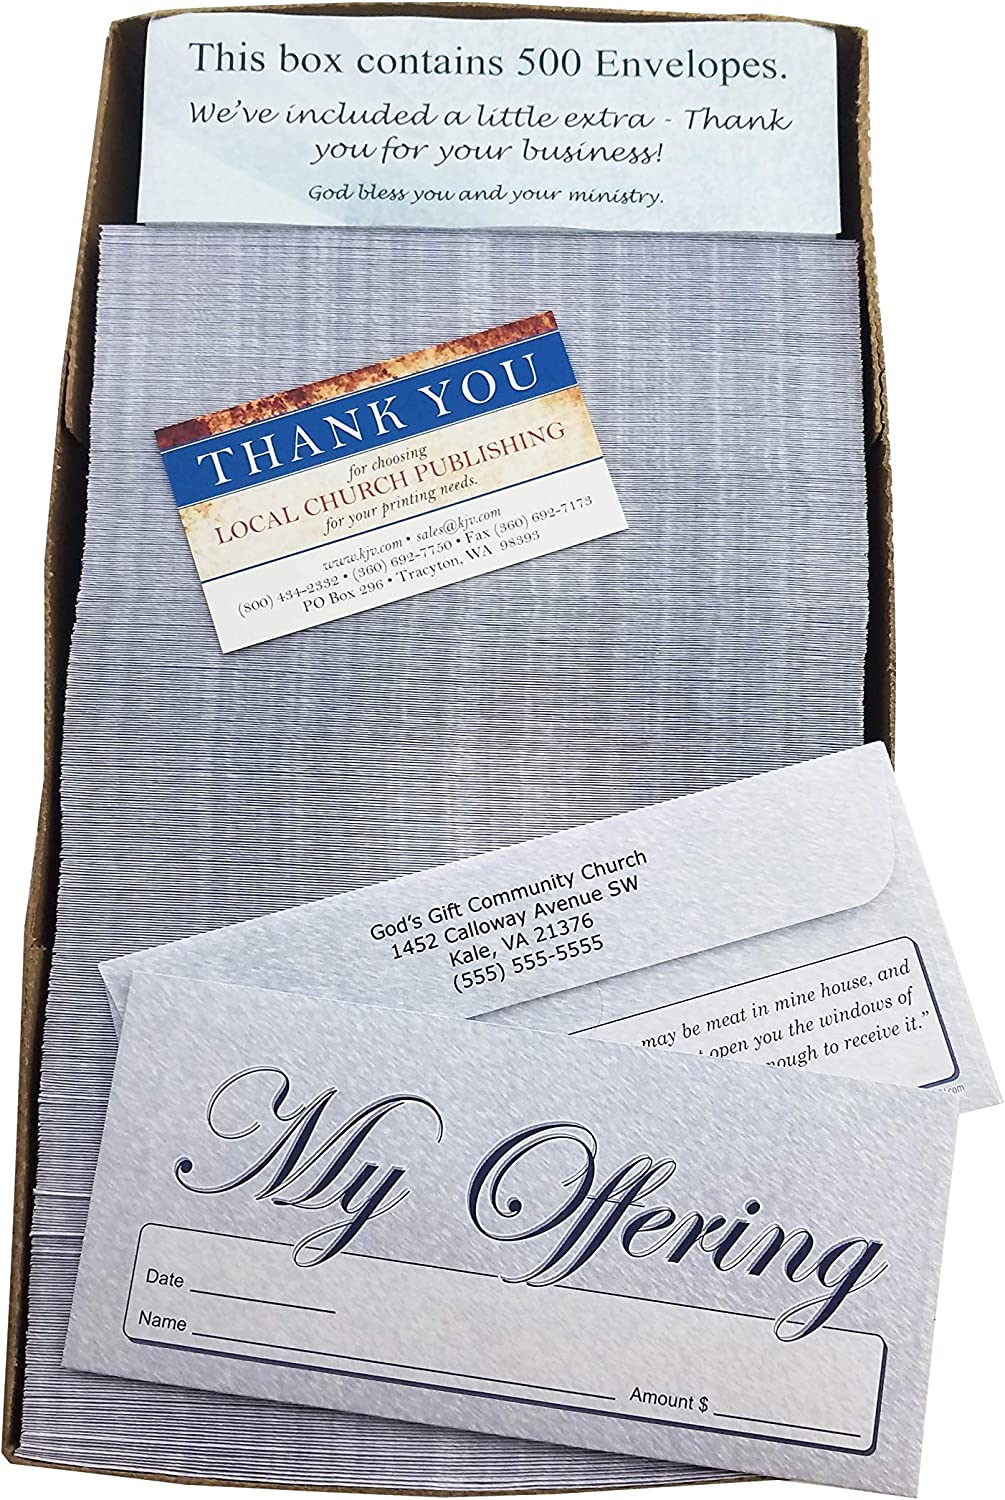 Custom My Offering - Church Tithe Envelopes Max 51% OFF Easy Blue 2021new shipping free shipping Donation